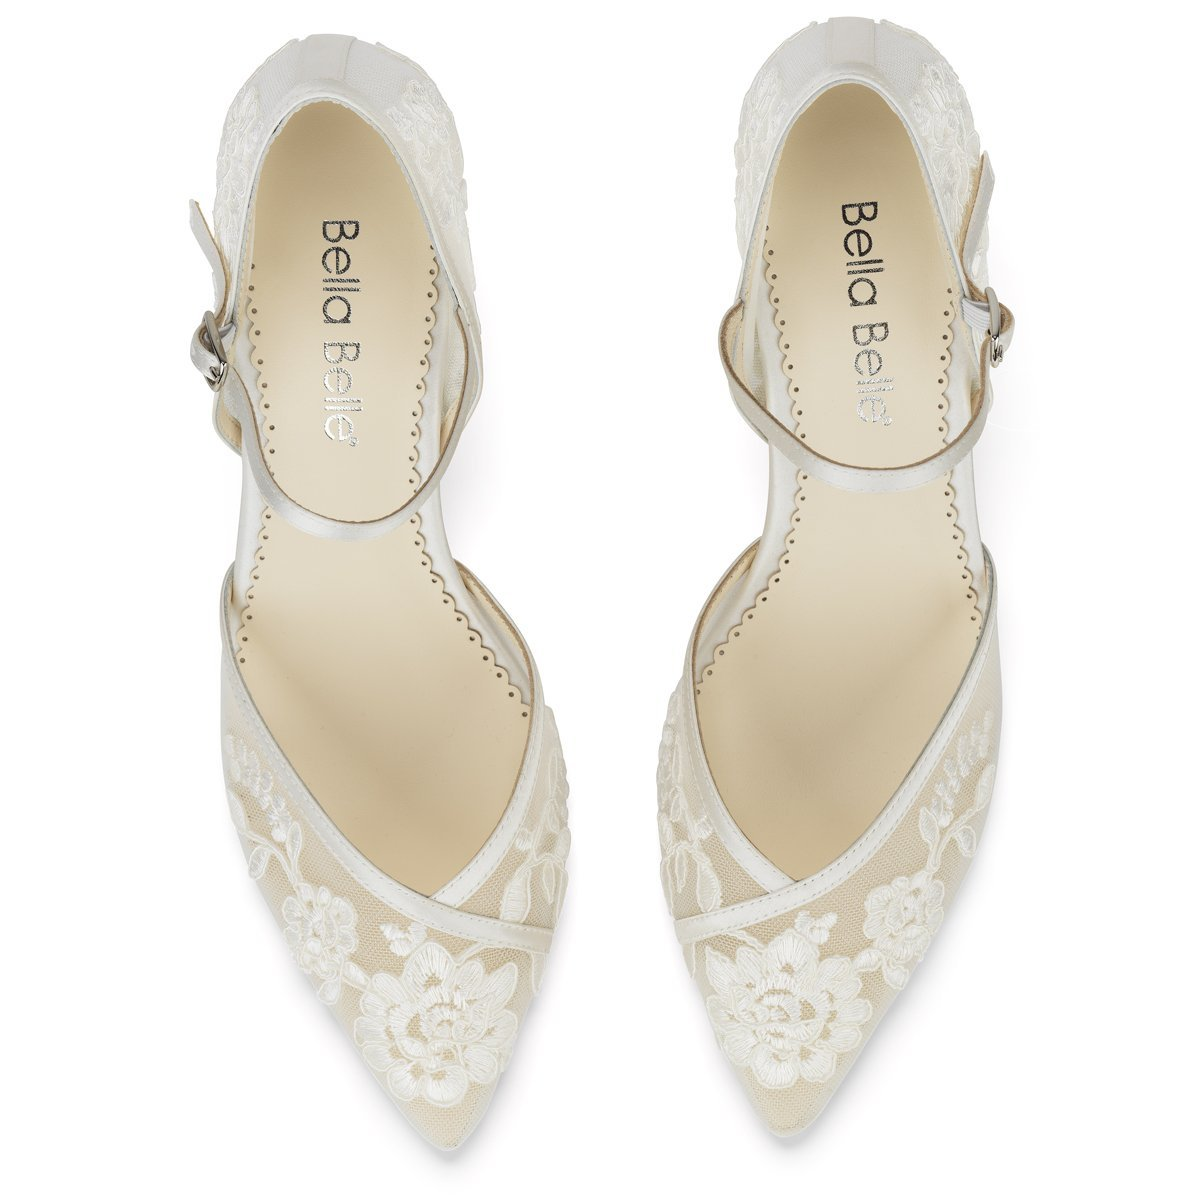 Candice -  Ivory Lace Low Heels